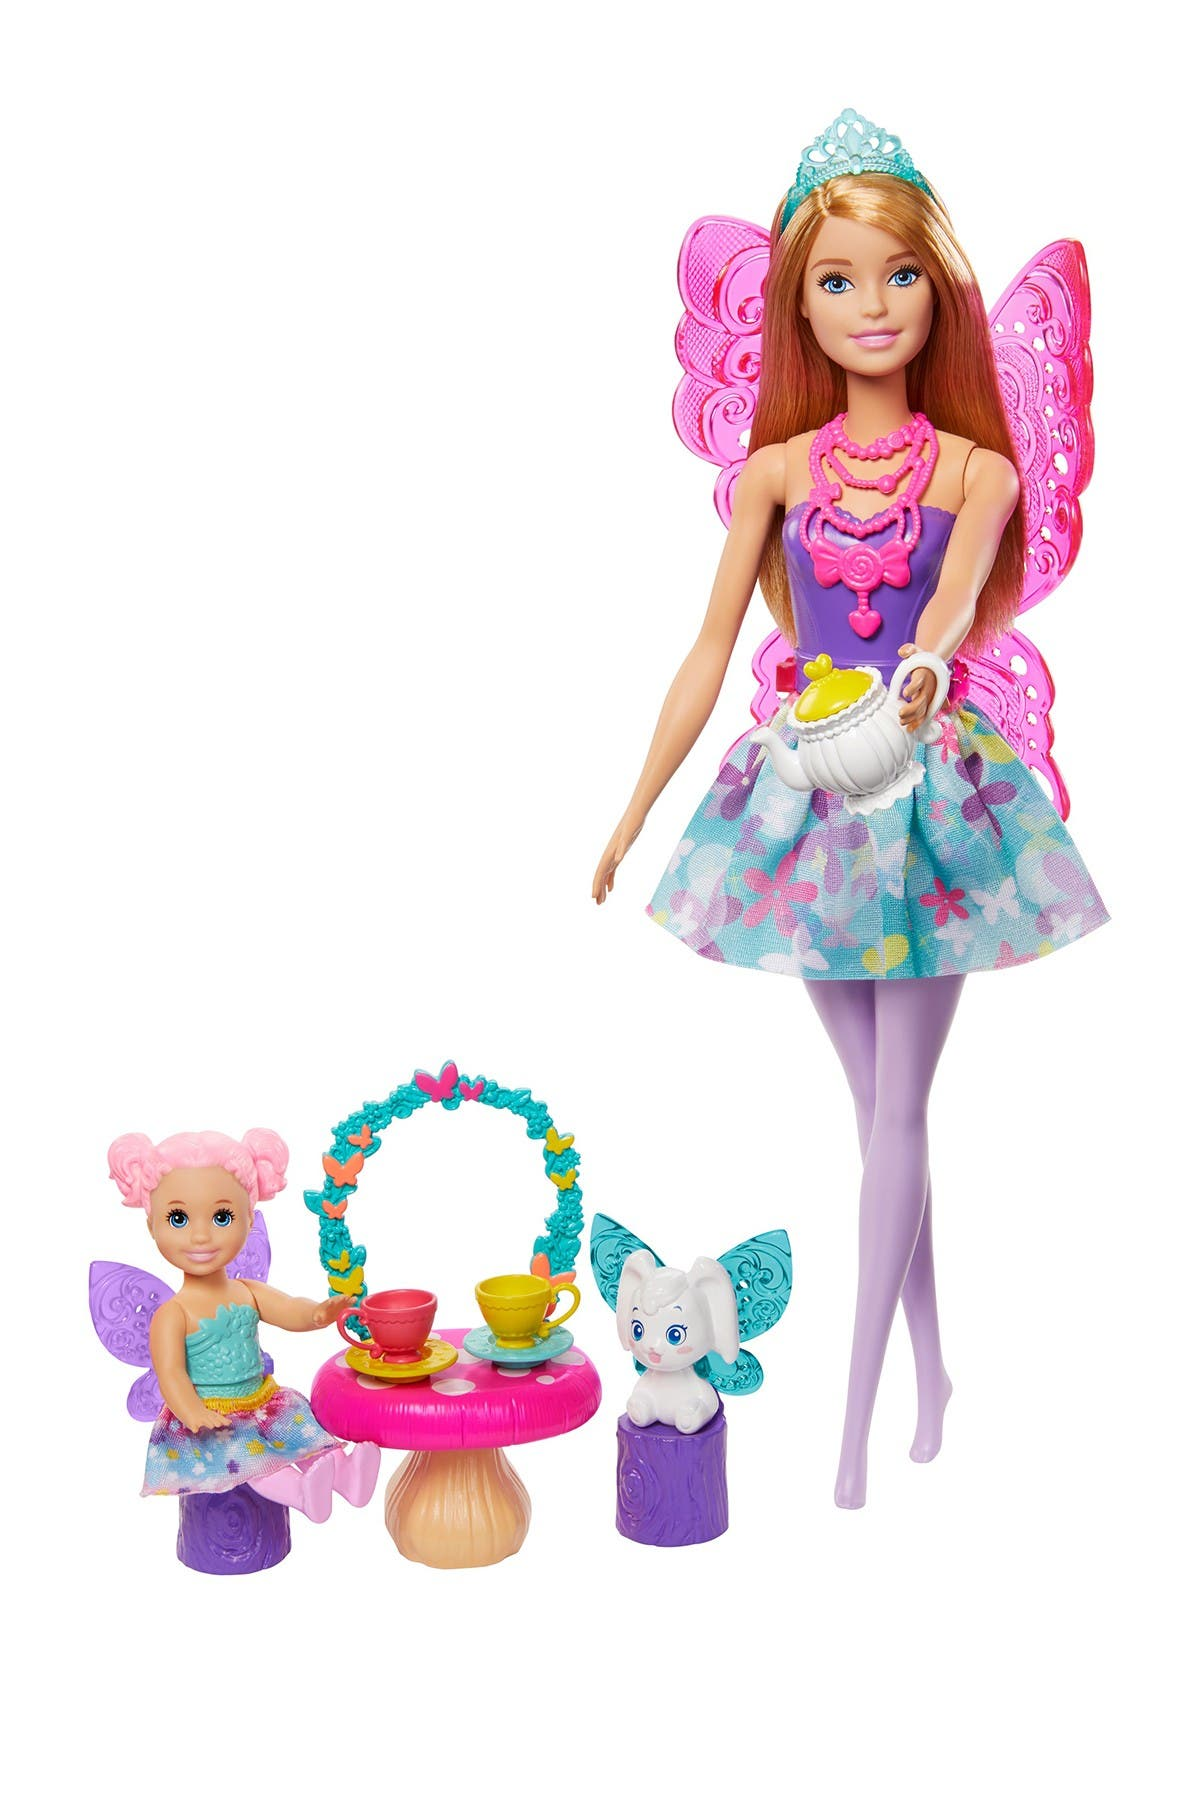 Image of Mattel Barbie(TM) Dreamtopia Tea Party Playset with Barbie(R) Fairy Doll